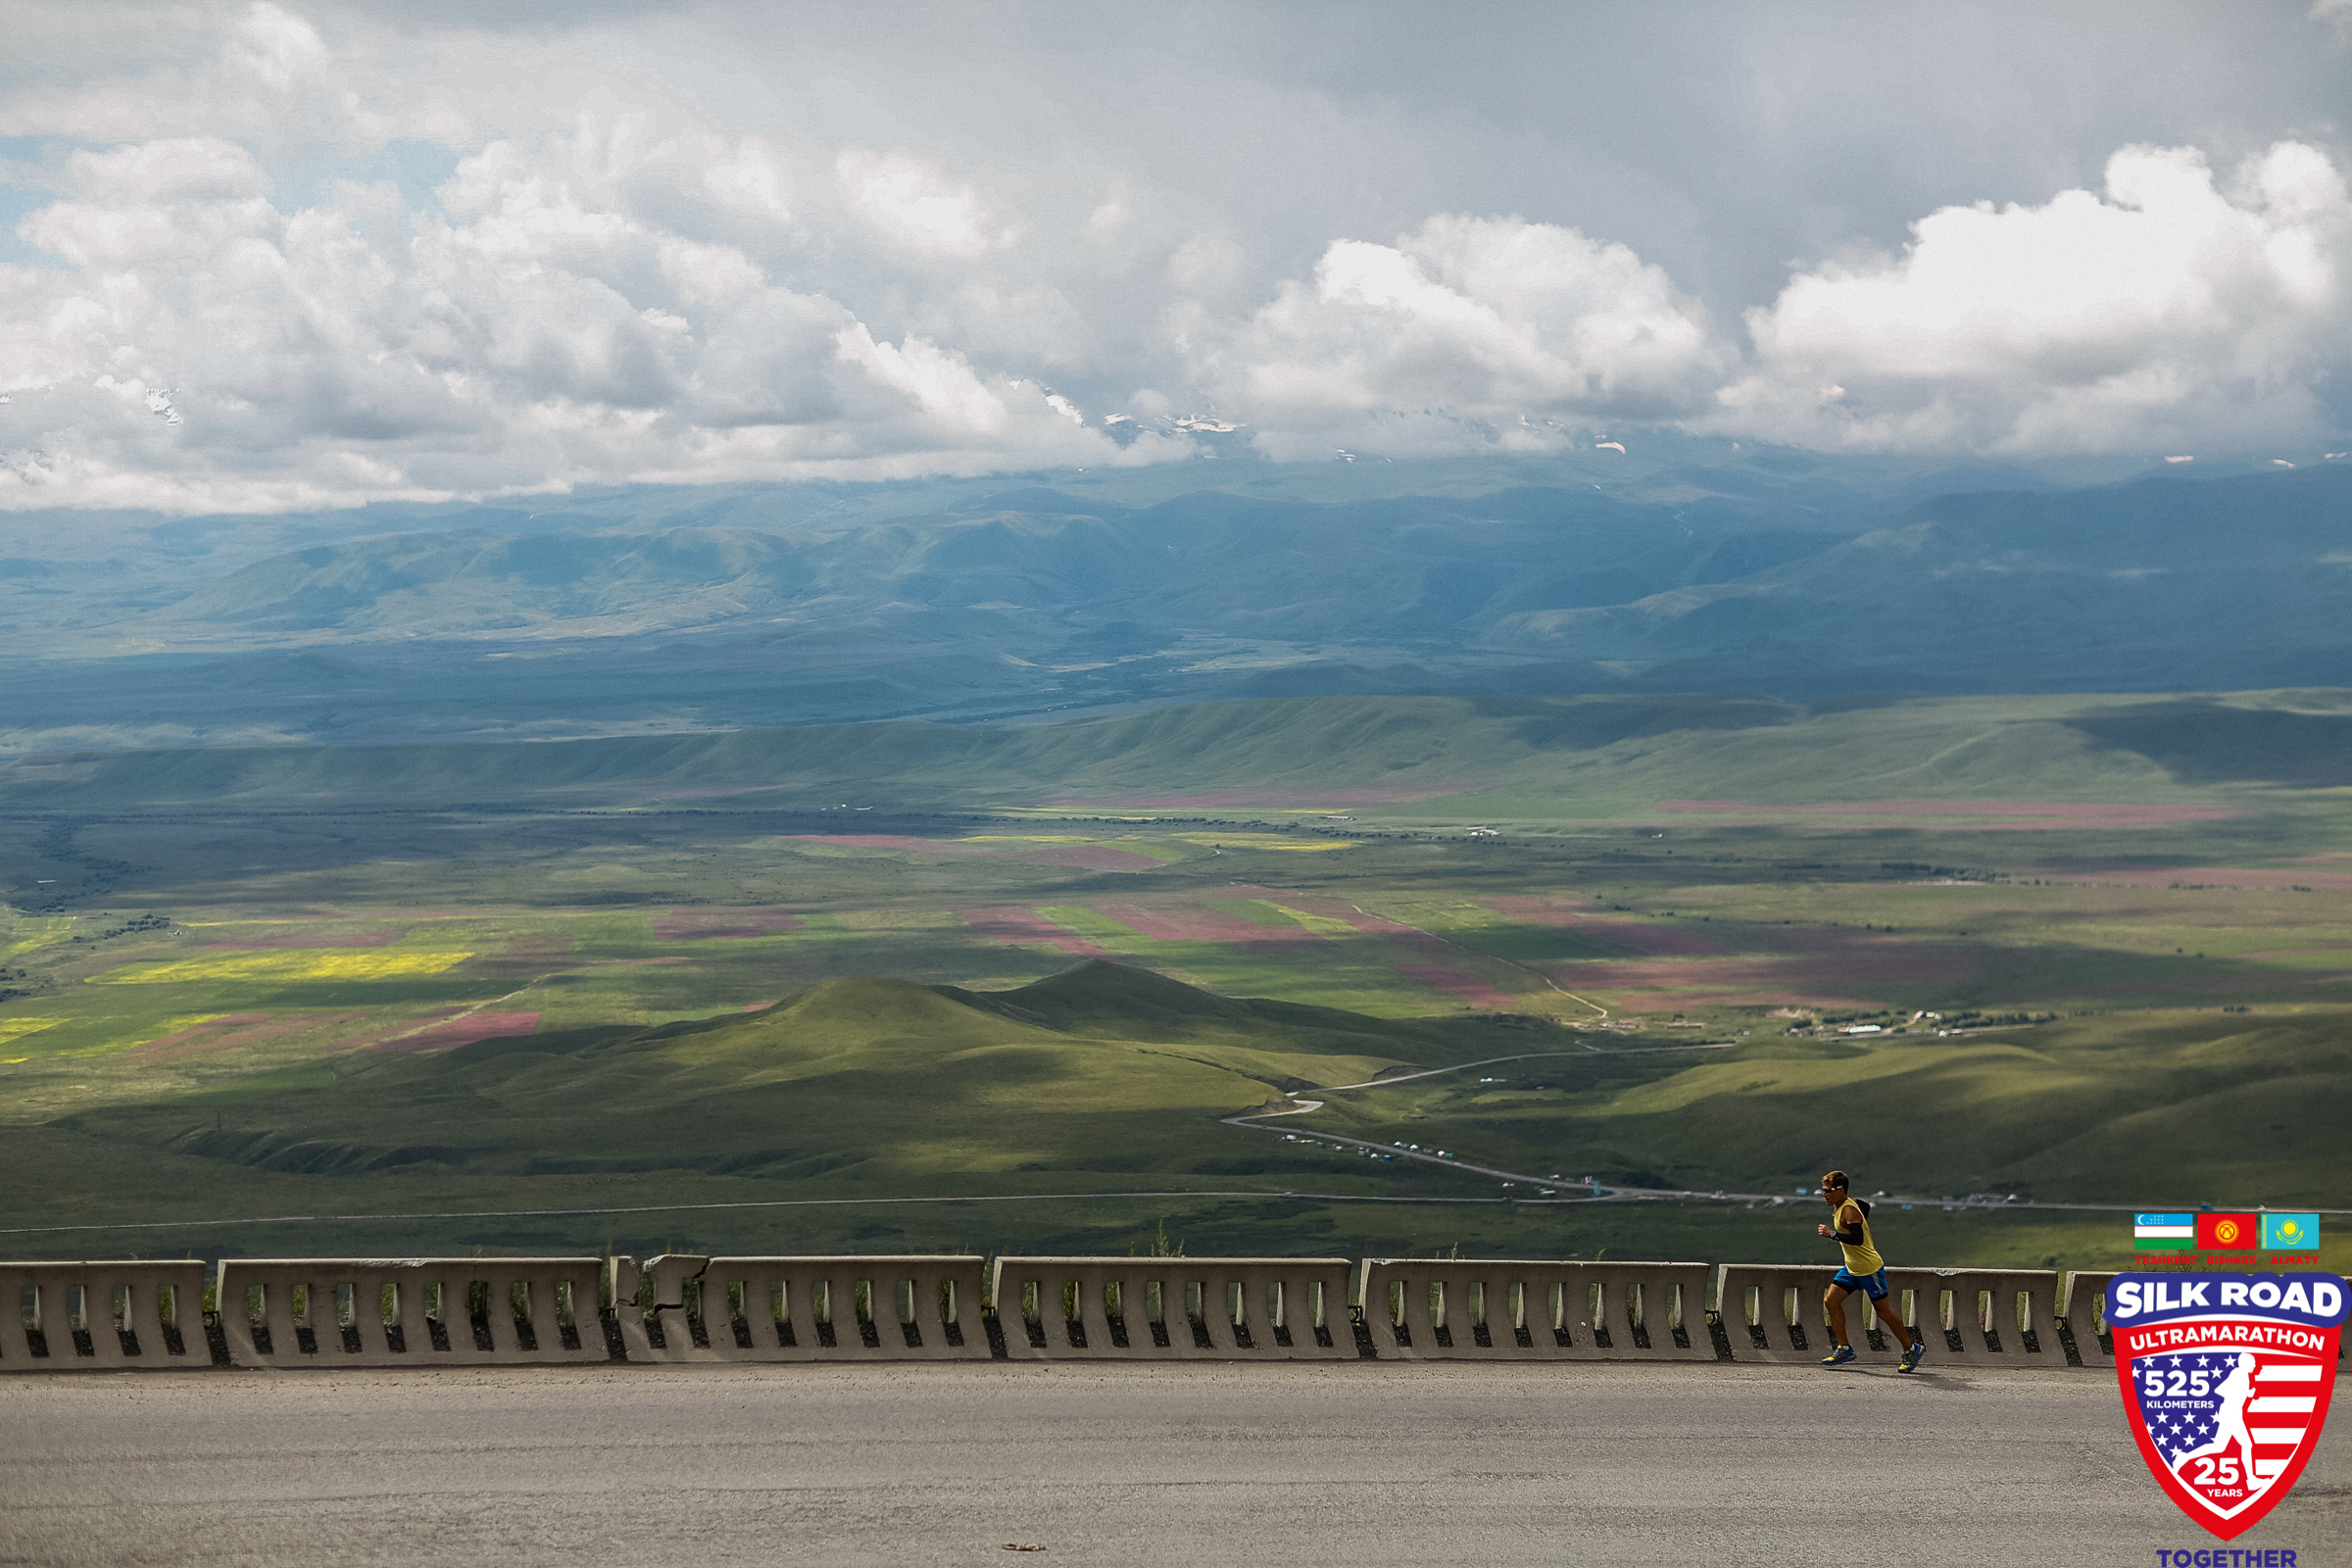 Dean runs next to an expansive view of fields, mountains, and clouds